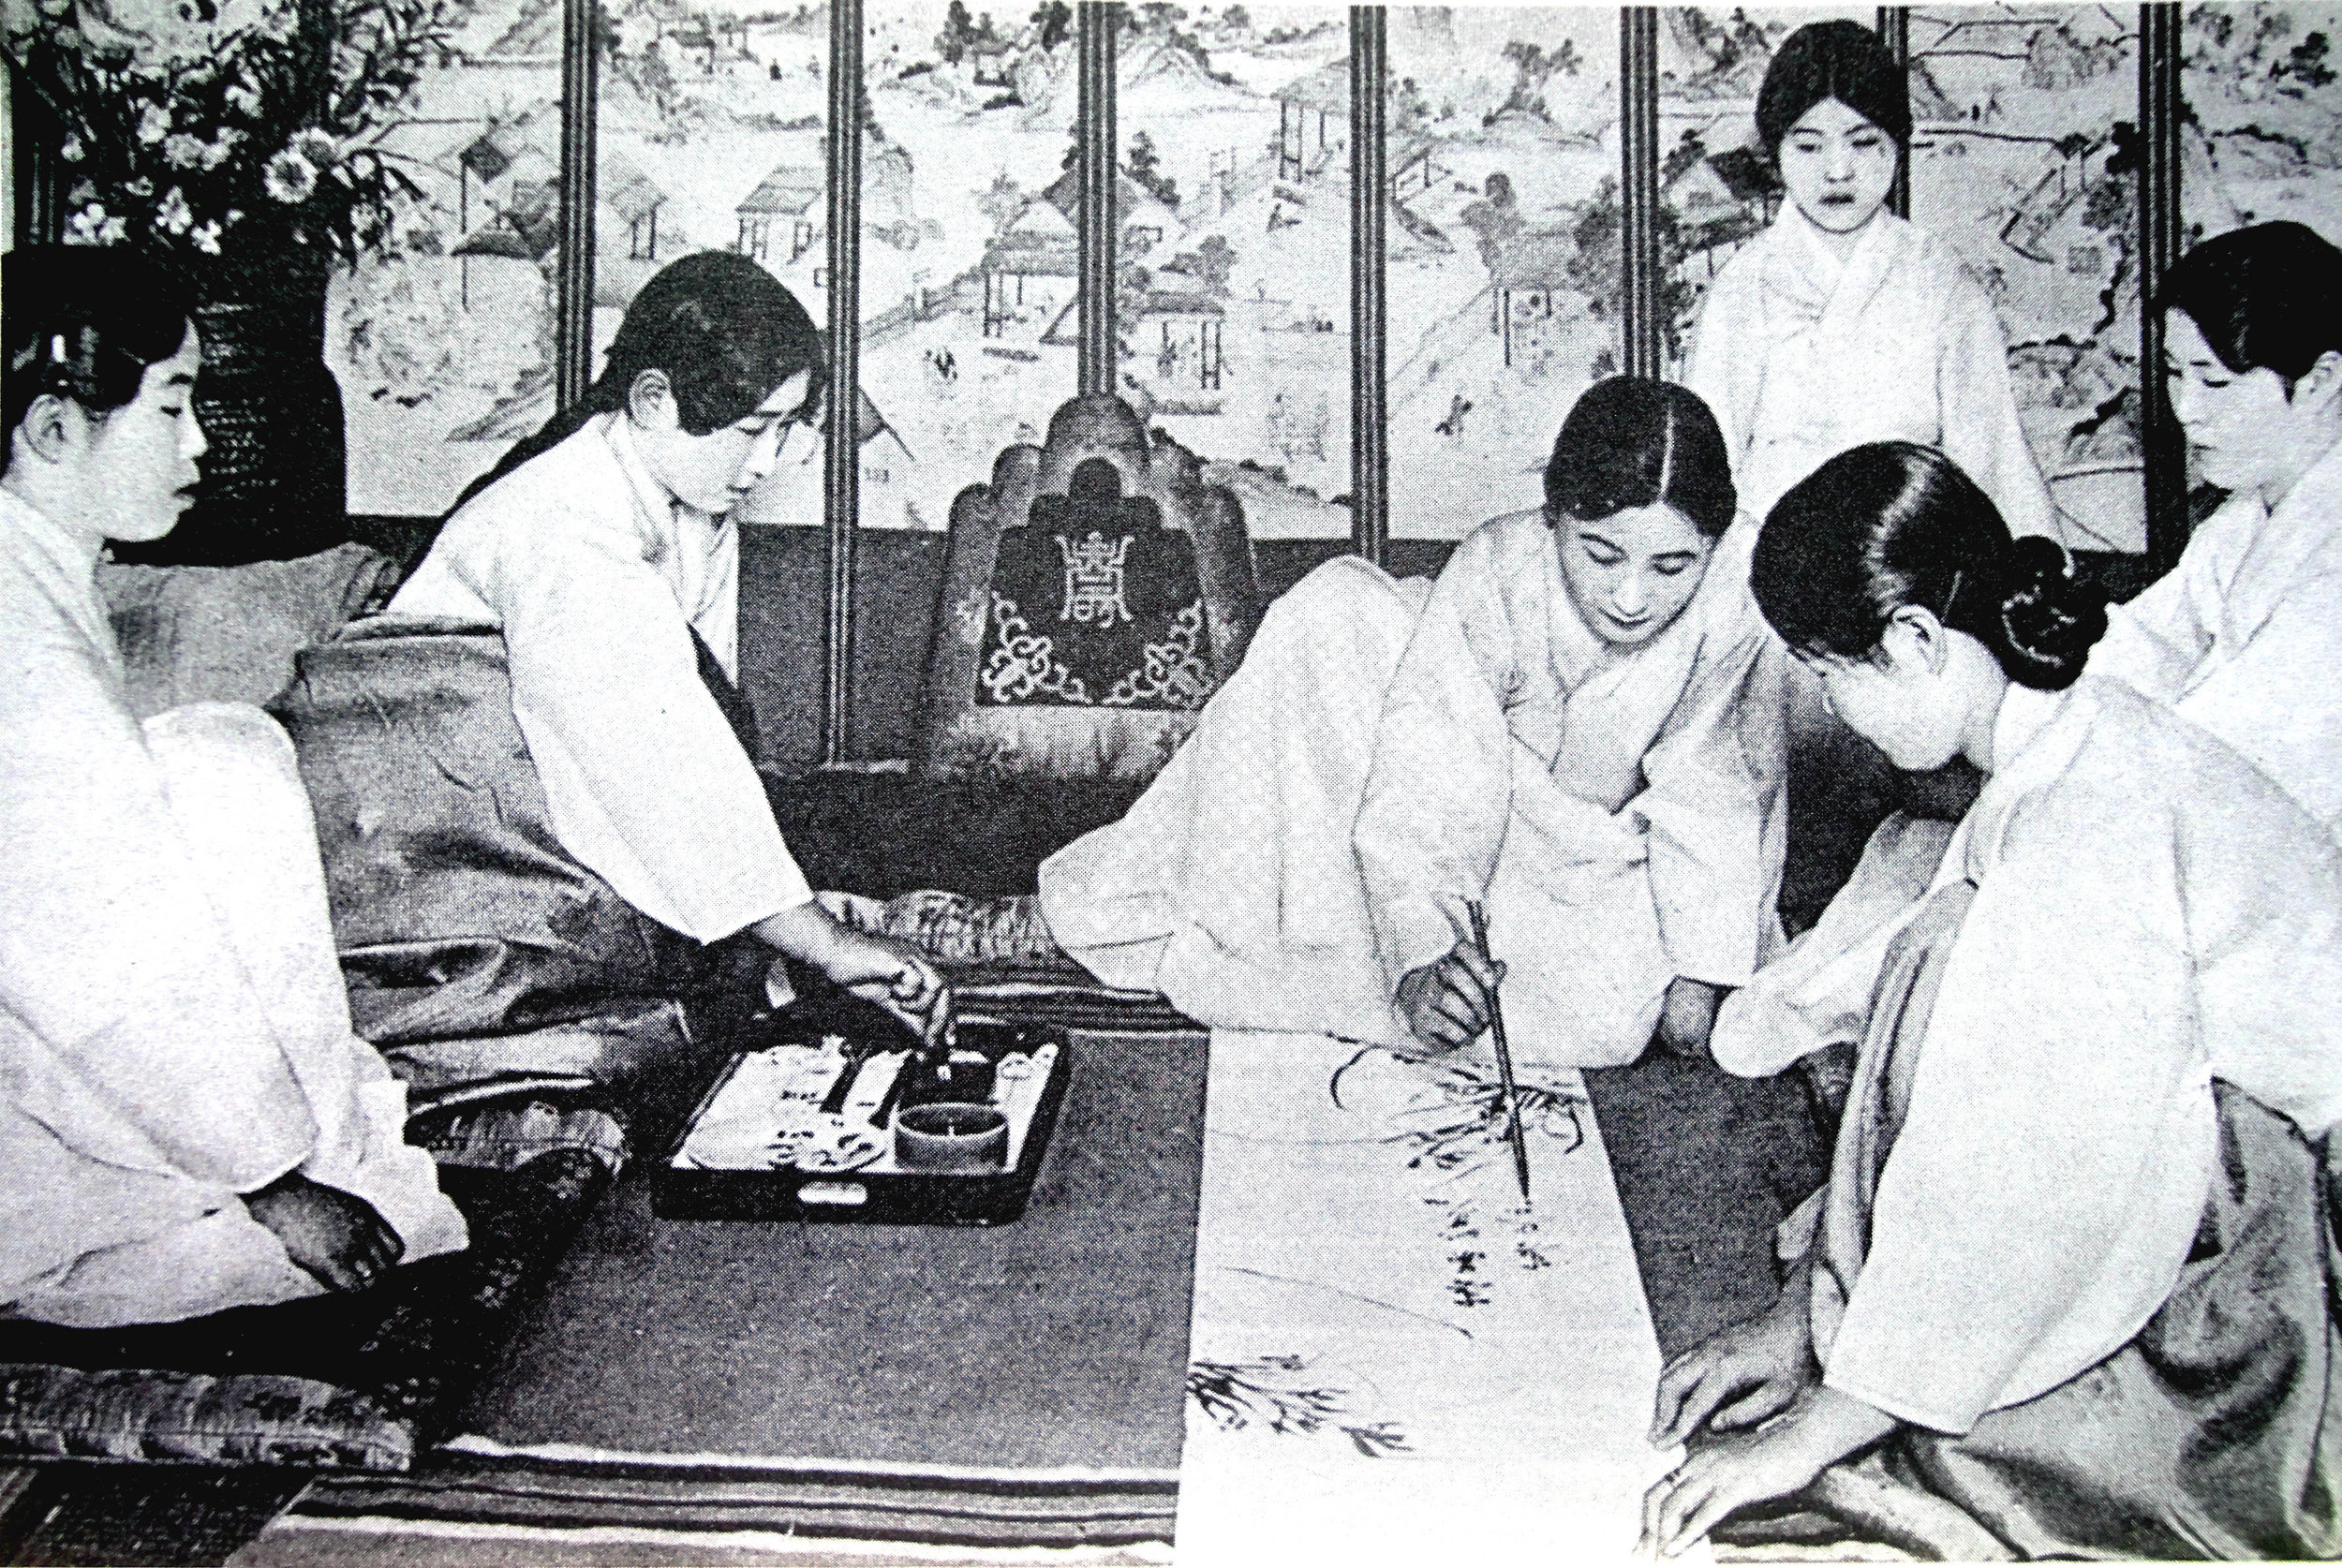 Gisaeng girls painting orchids and writing poetries.